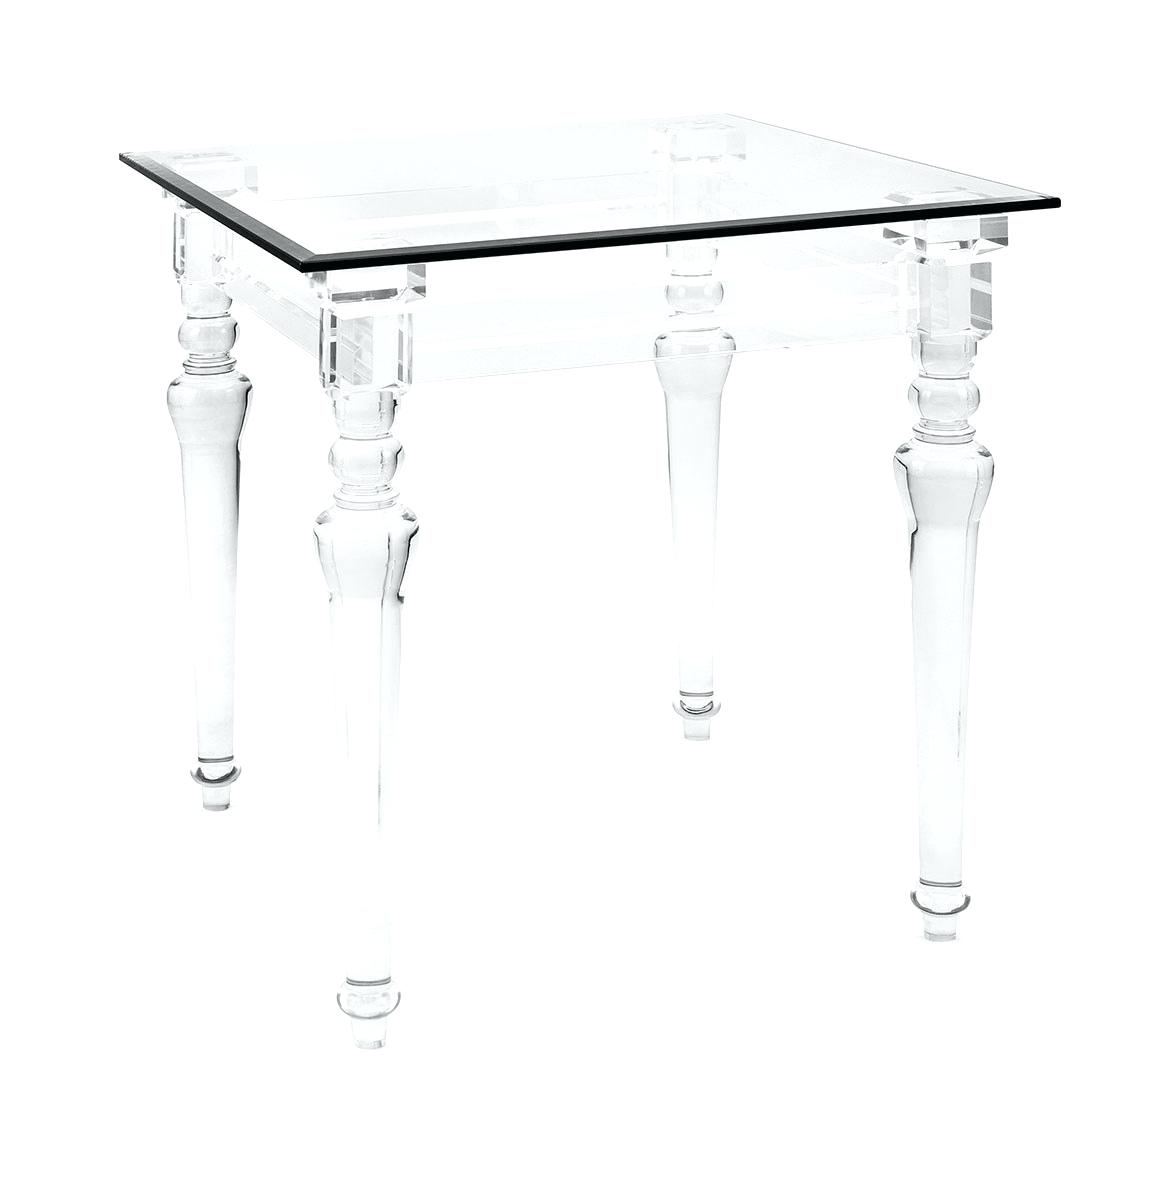 acrylic accent table clear round zella small umbrella target bedroom furniture navy linens outside storage containers tablecloth factory antique dining room pieces backyard pub